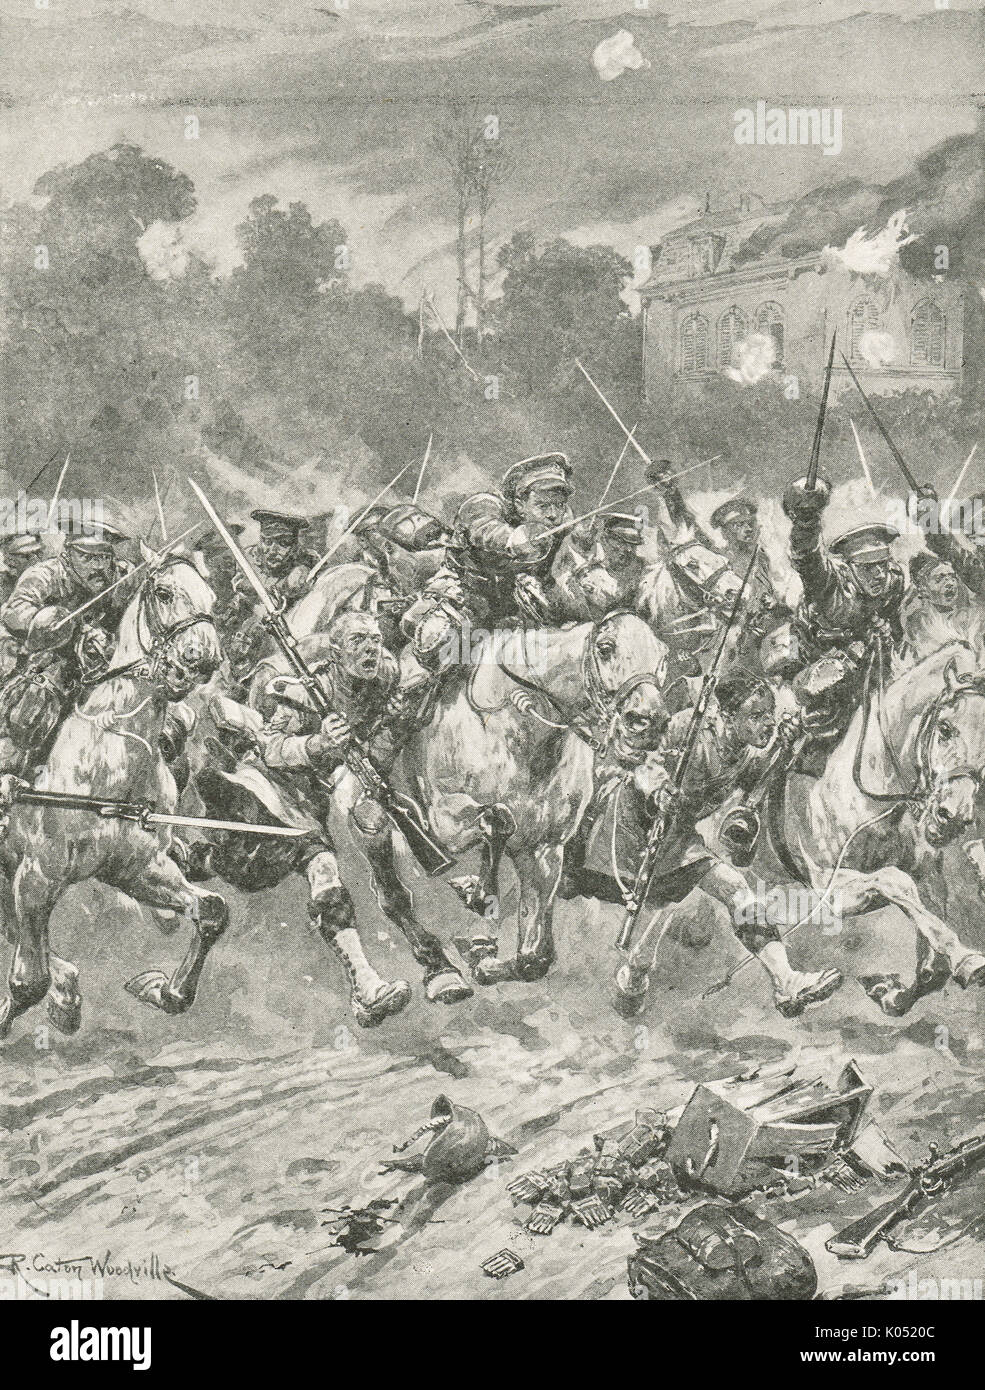 Mythical Stirrup charge at St Quentin, WW1 - Stock Image